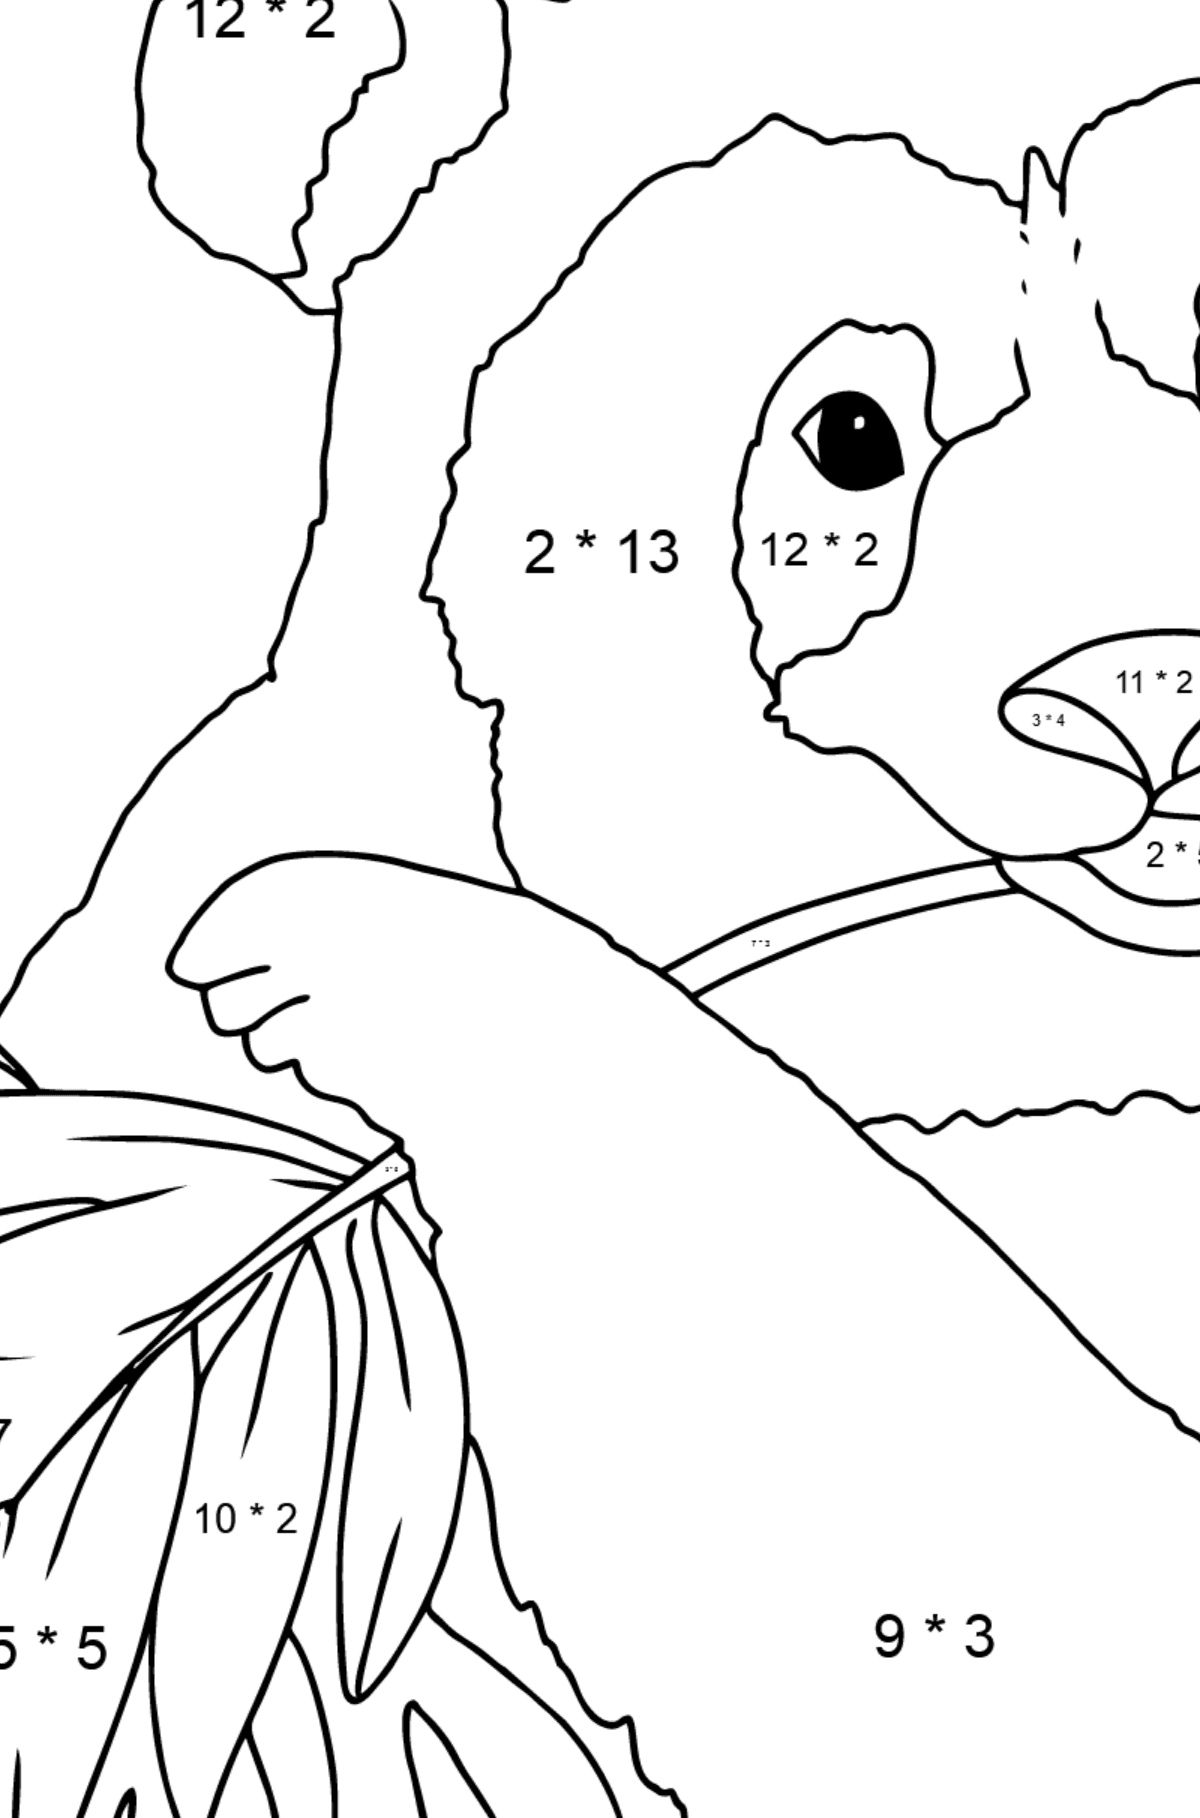 Coloring Page - A Panda is Eating Bamboo Leaves - Math Coloring - Multiplication for Children